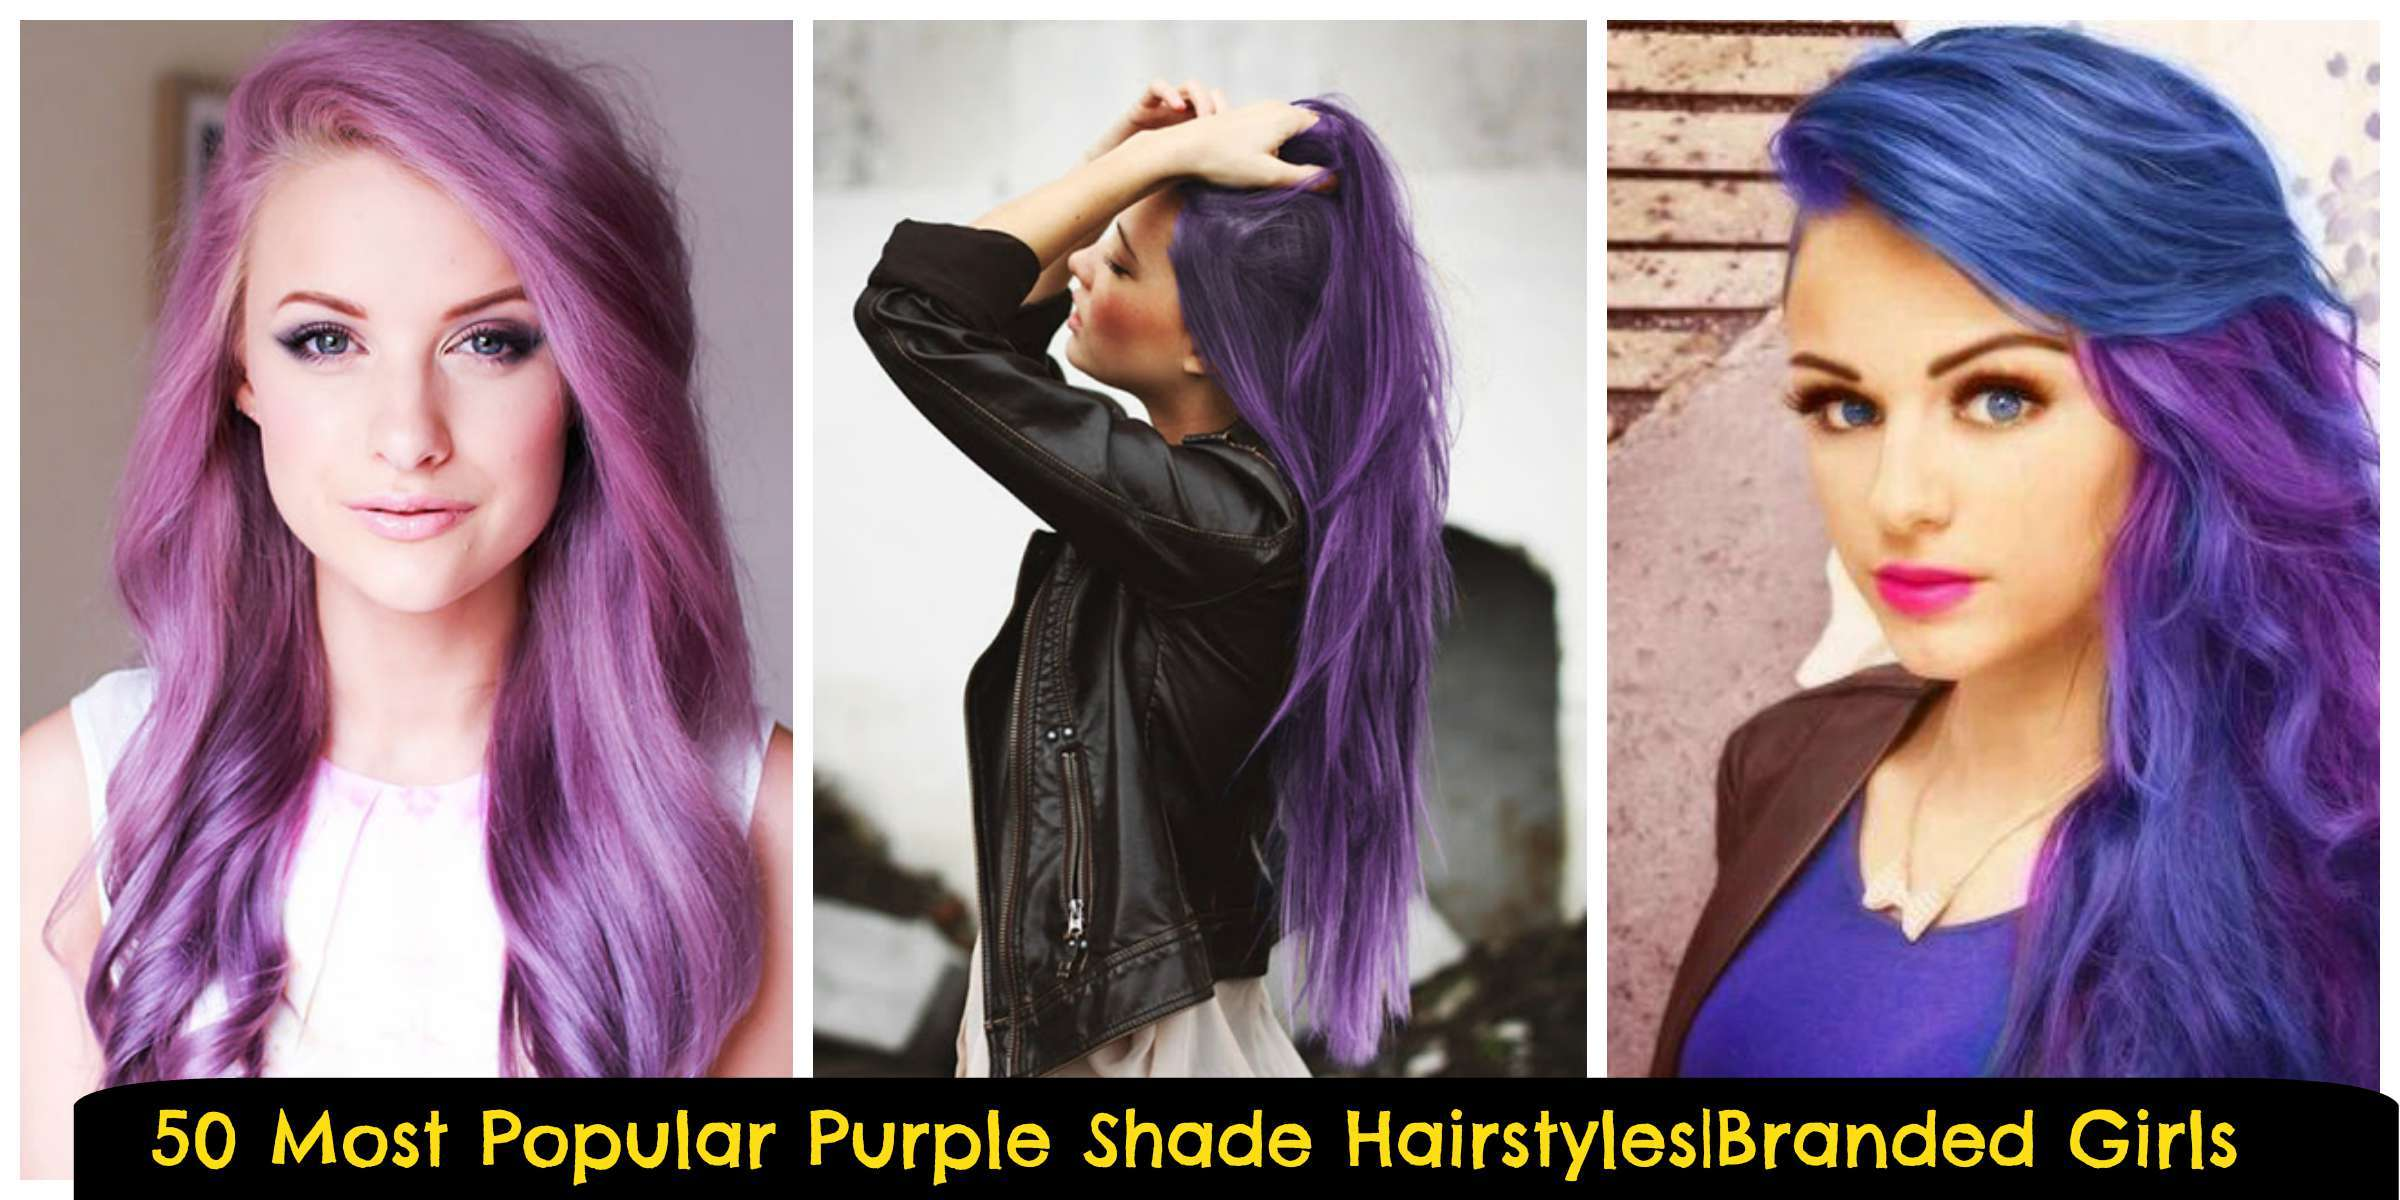 different hairstyles in Purple shades